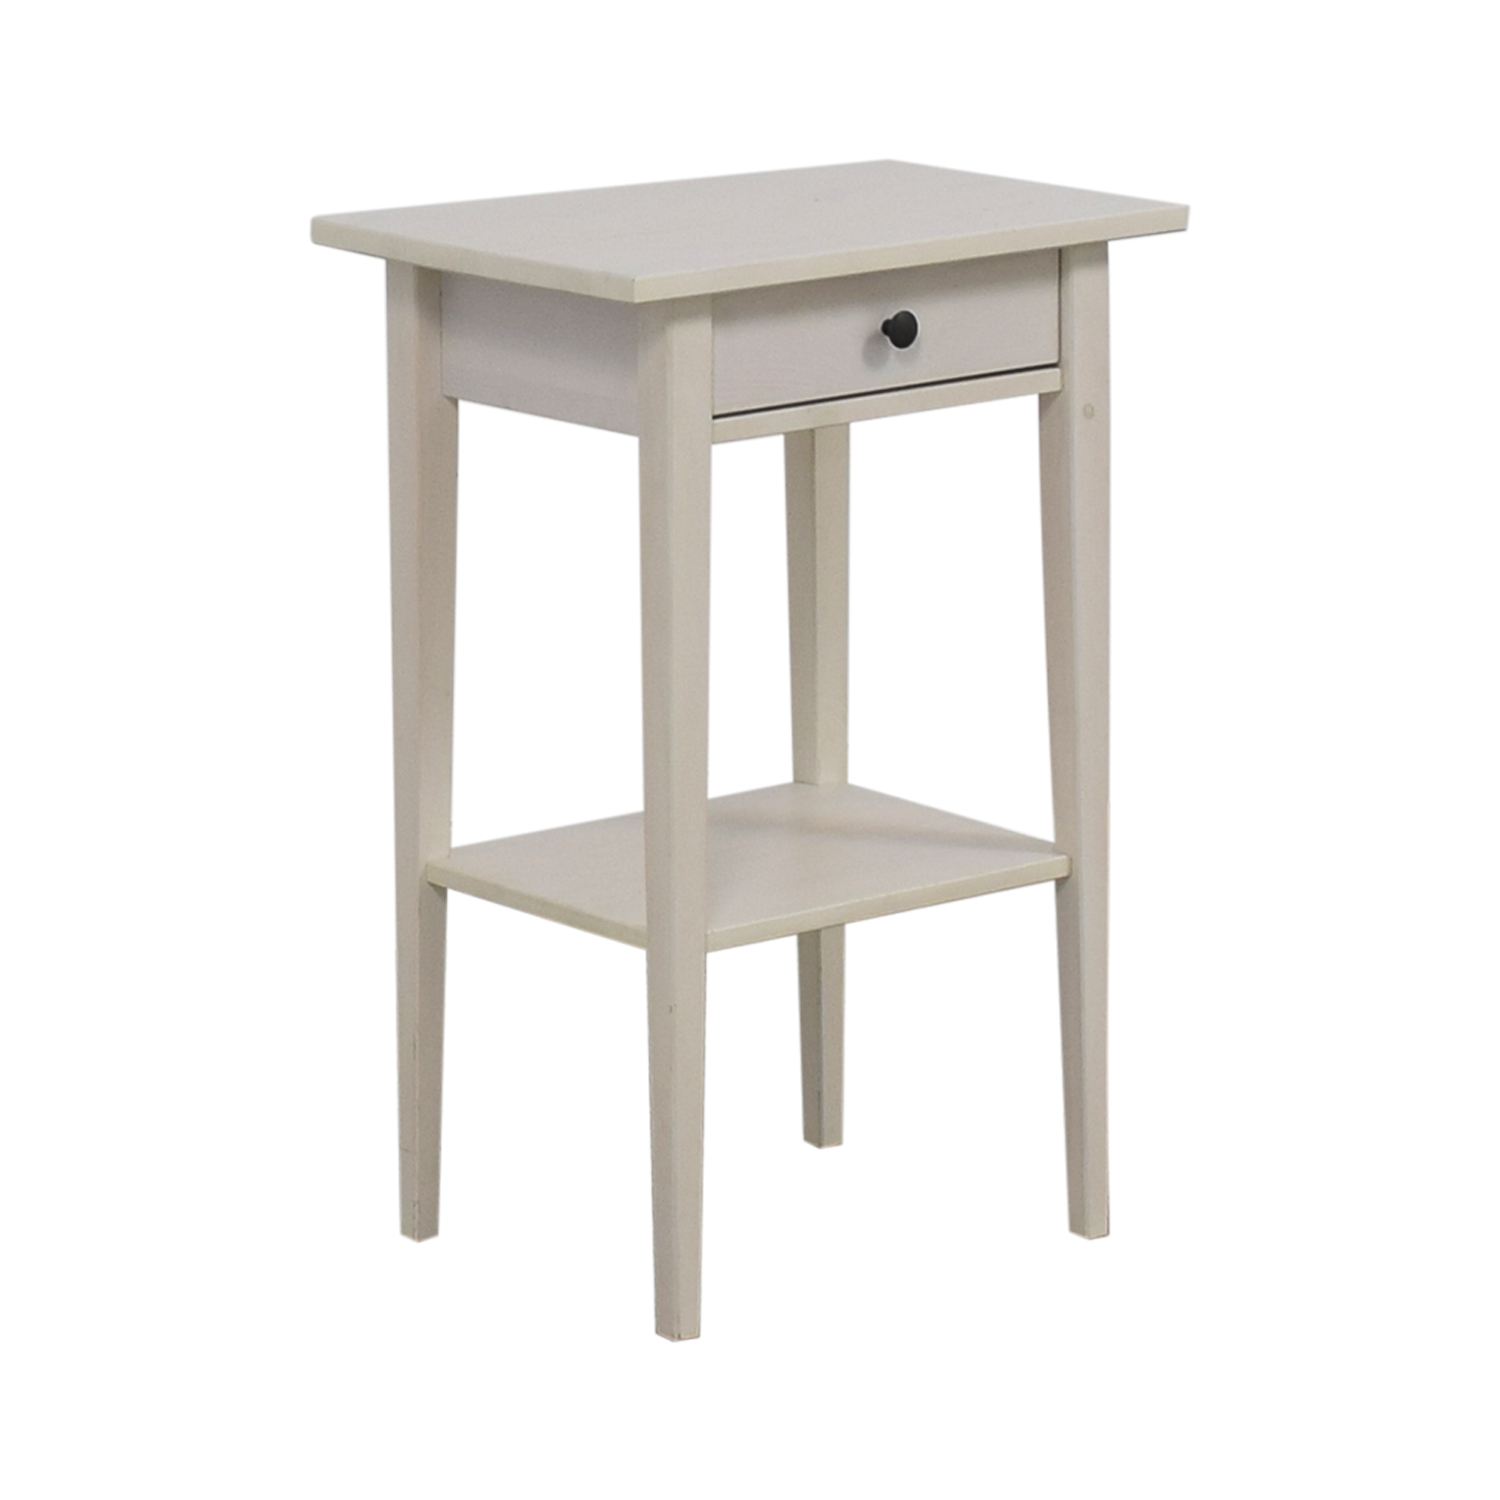 84 off ikea ikea hemnes white night table tables for Ikea comodino hemnes